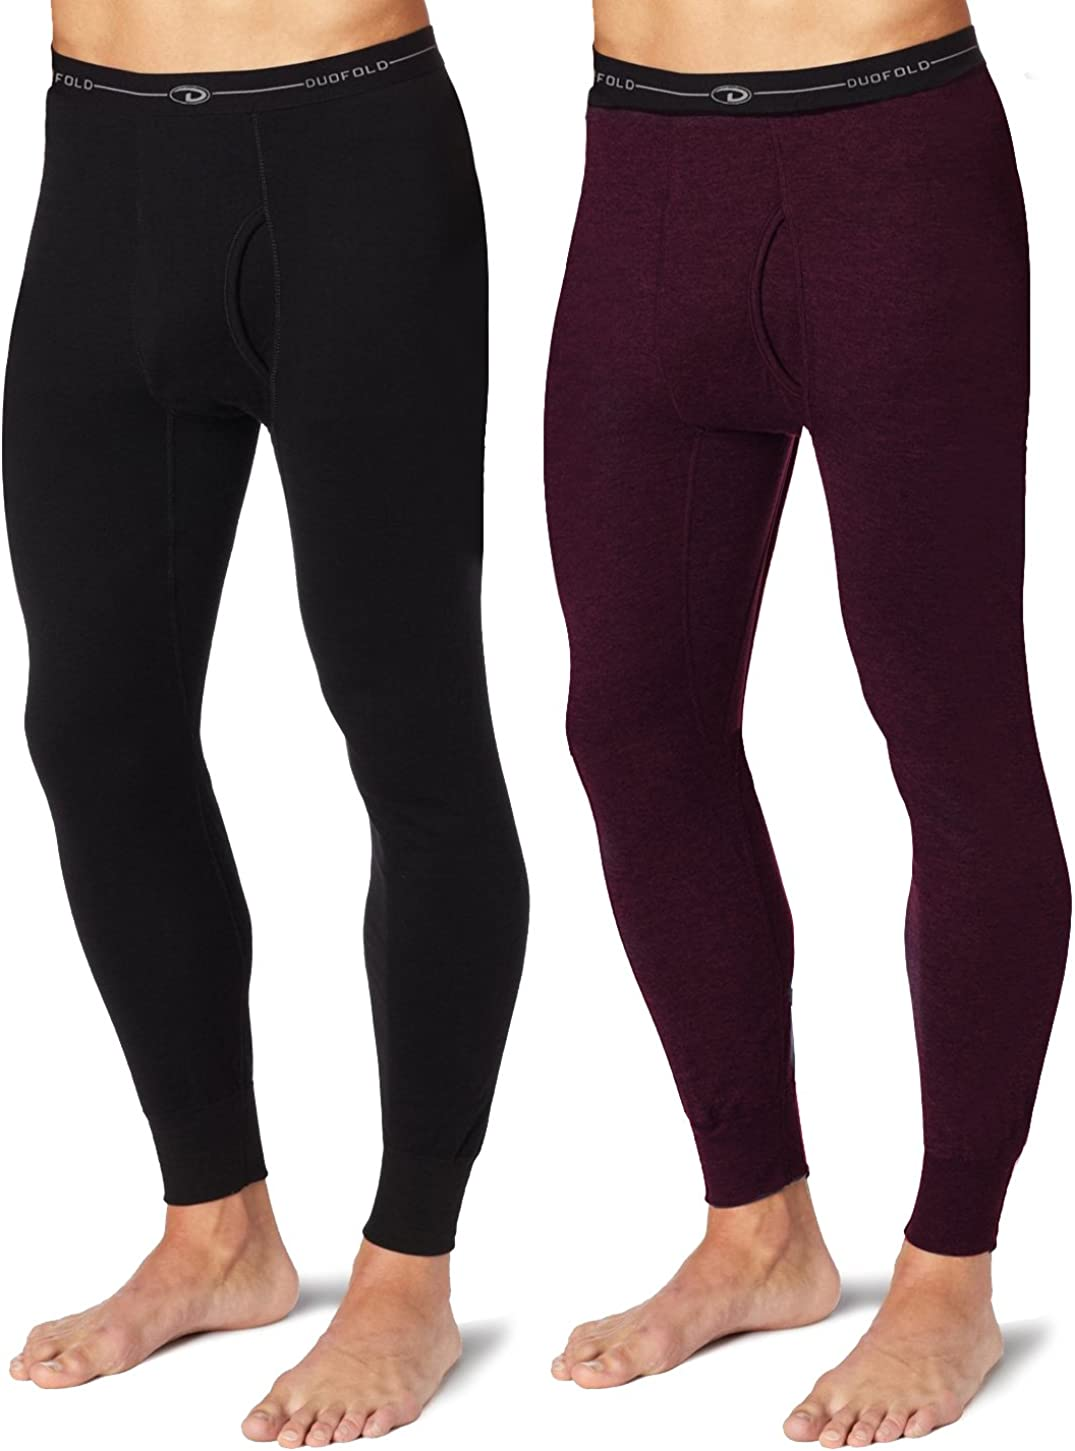 Duofold KMW2 Men's Mid Weight Wicking Thermal Pant 1 Black + 1 Bordeaux Red